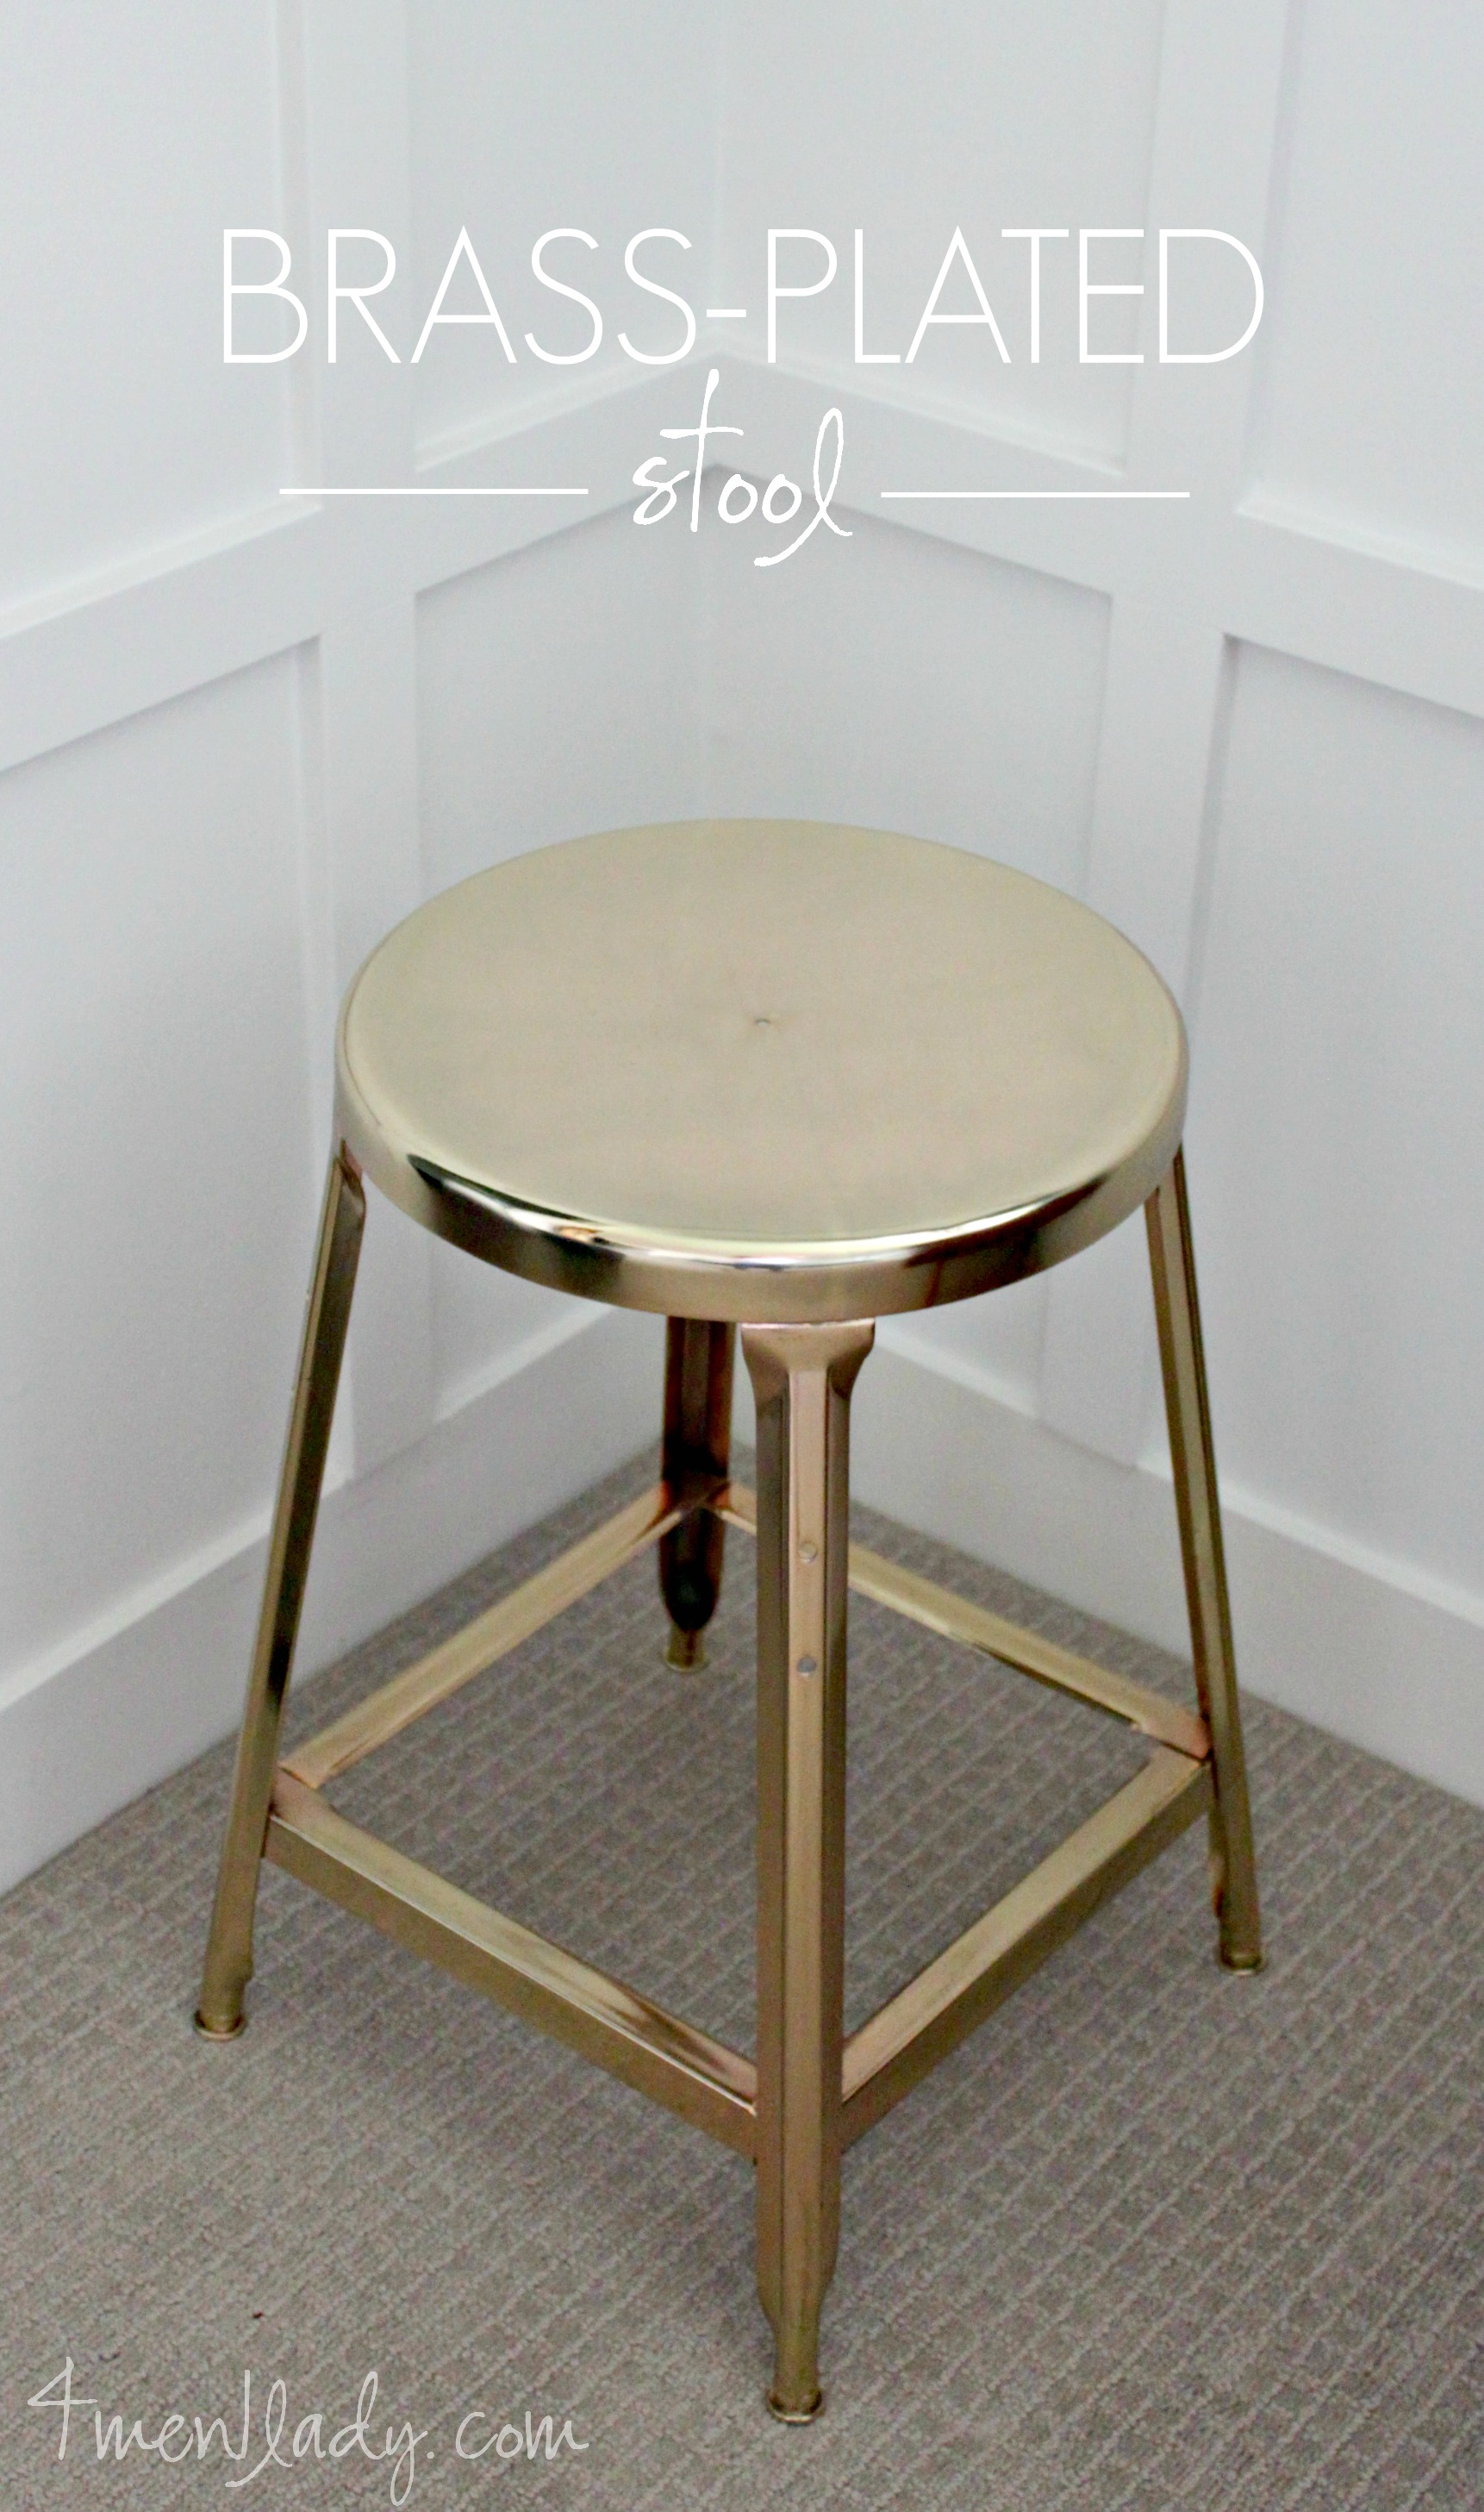 Diy Projects For Men Brass Plated Stool